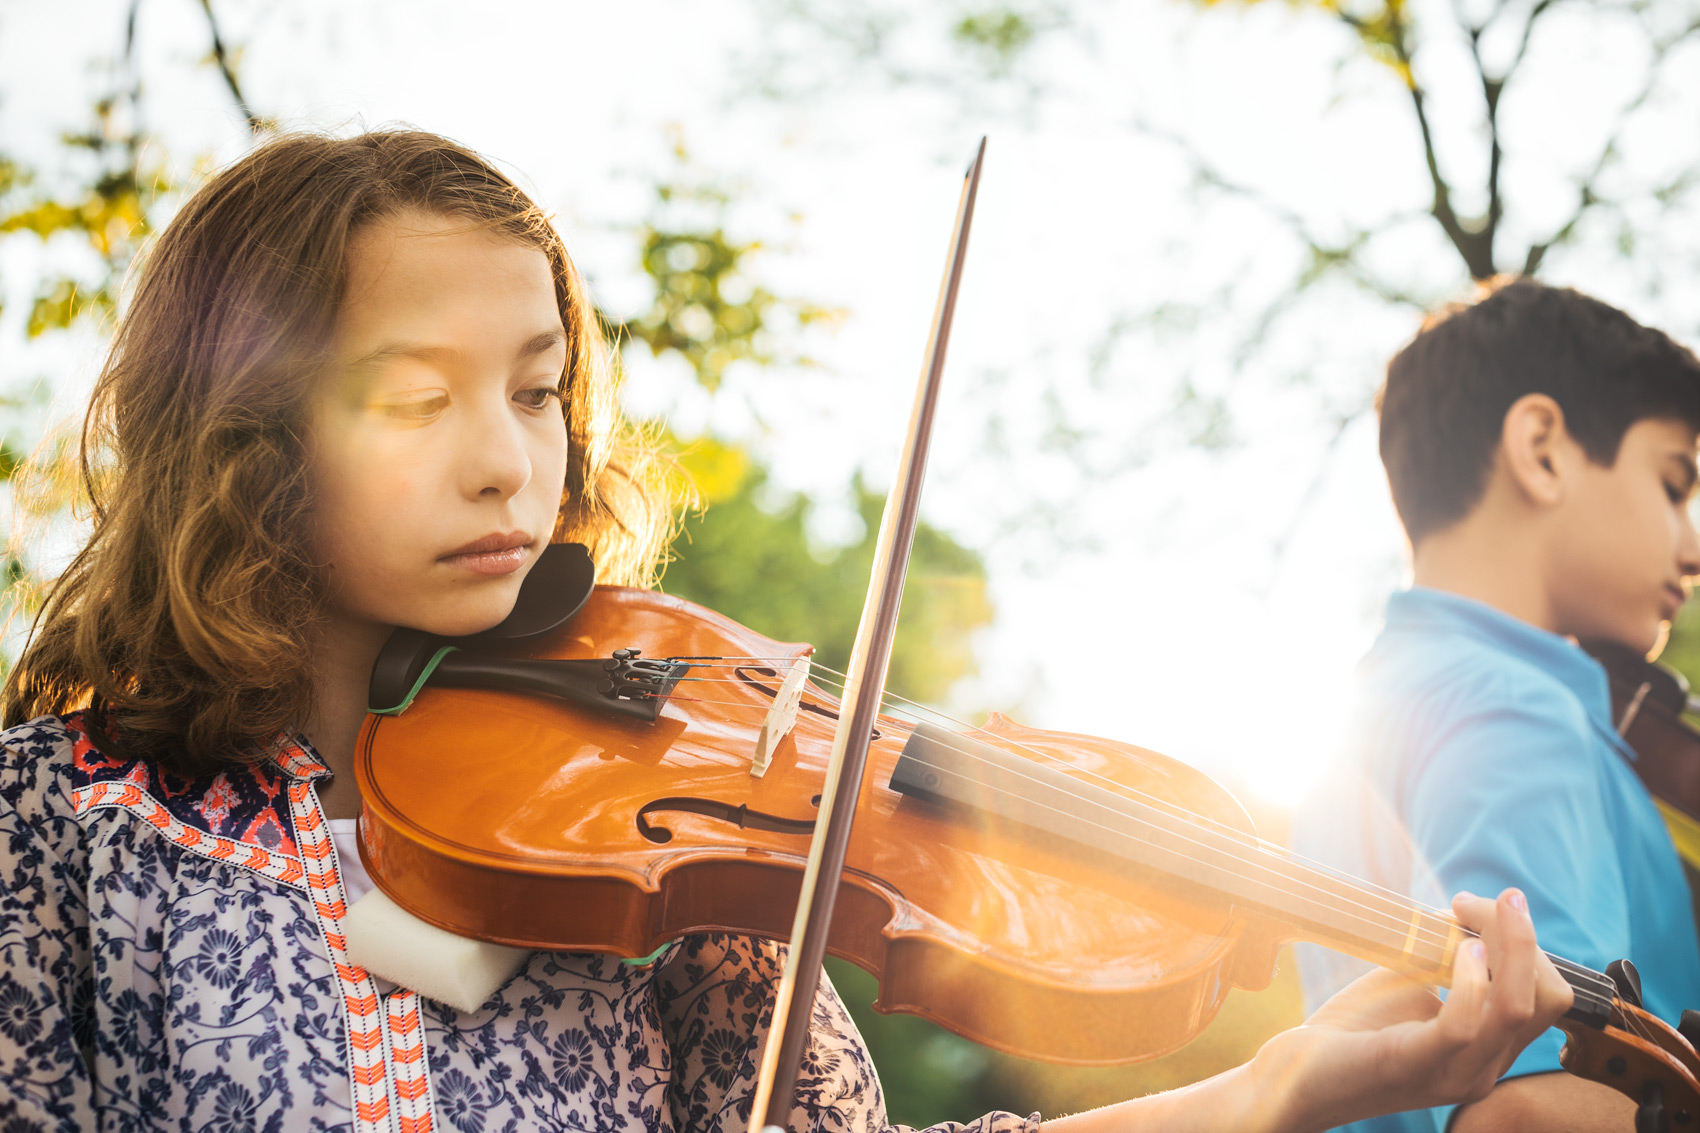 adolescent girl playing violin outside, washington dc commercial photography